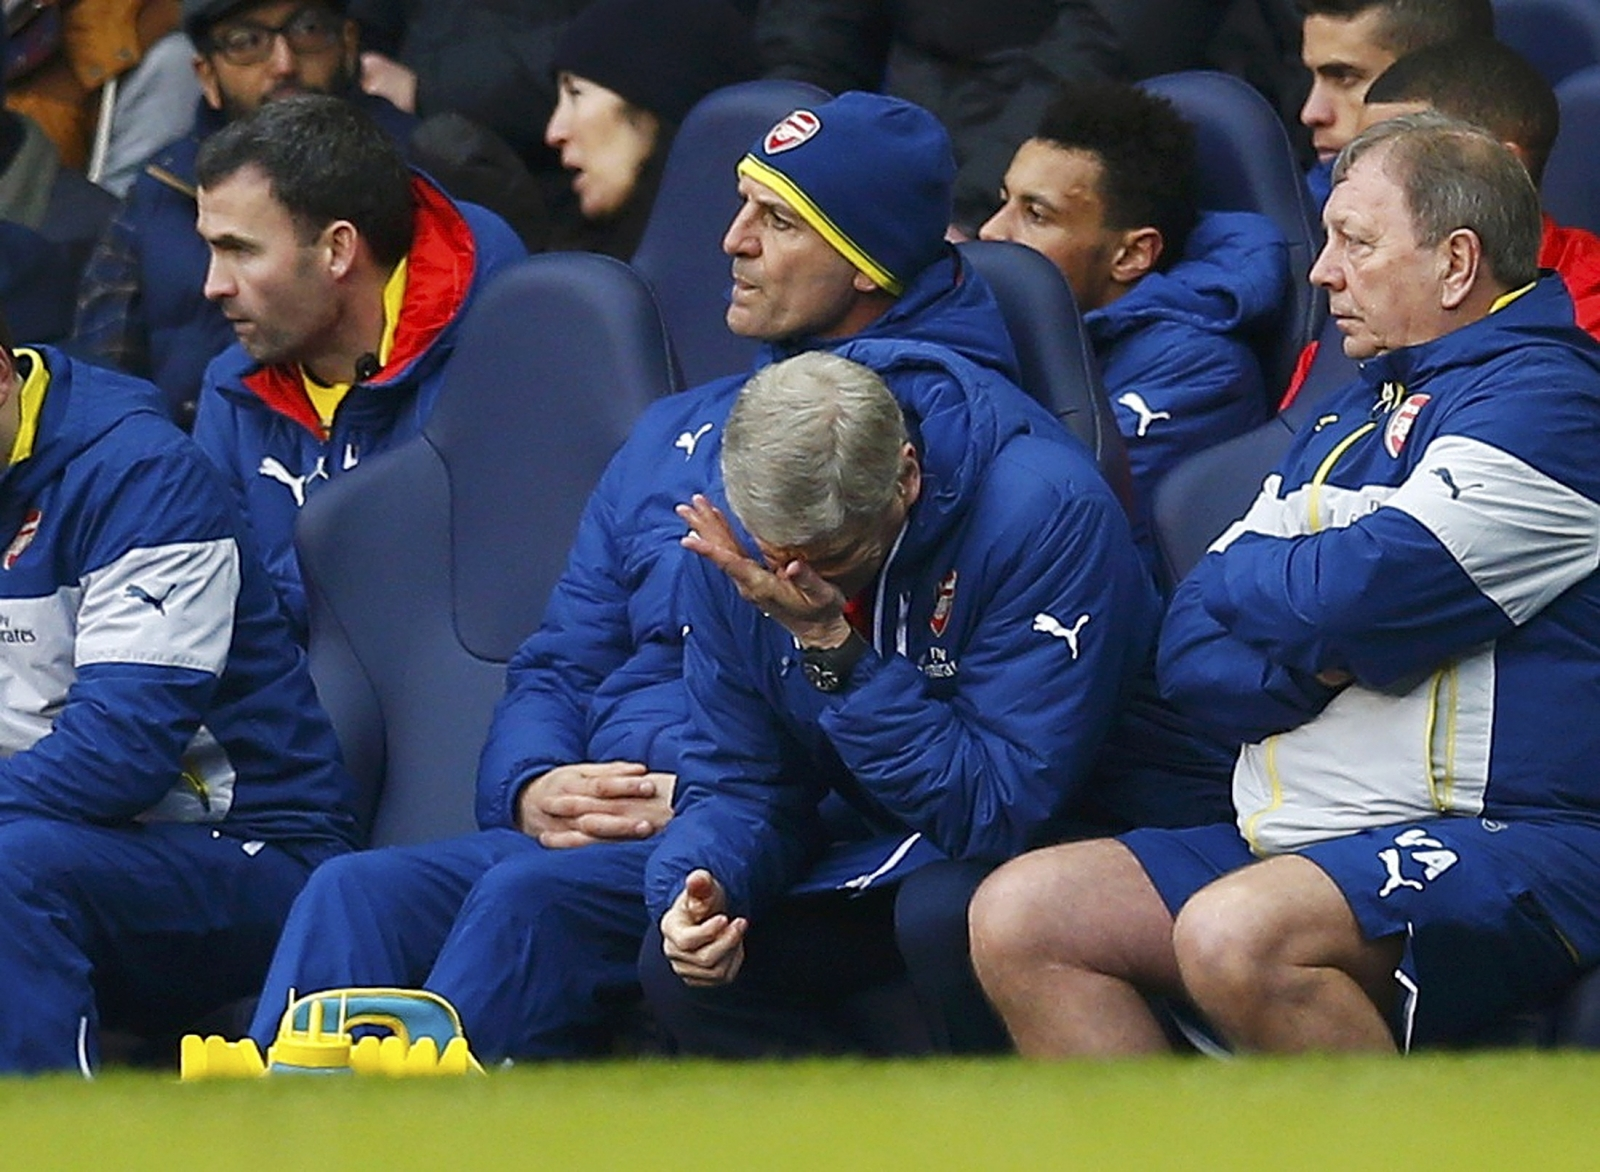 Arsene Wenger: Focus on the next match not memories